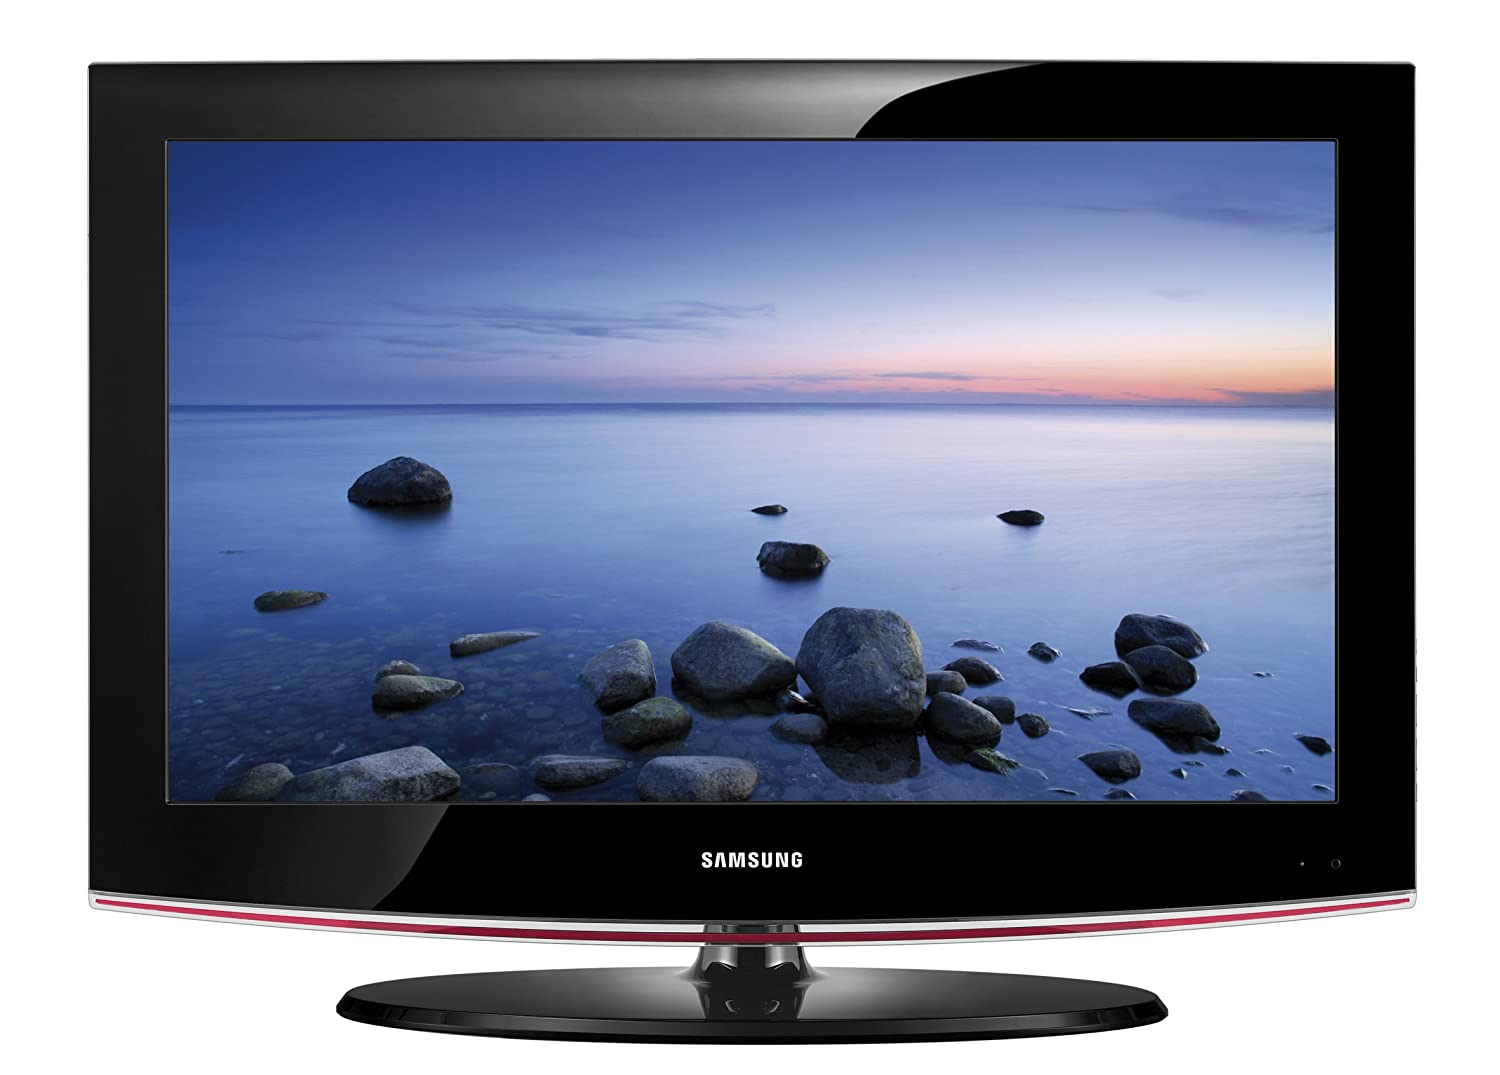 Samsung LE26B450C4 26-inch Widescreen HD Ready LCD Television with Freeview  (Discontinued by Manufacturer): Amazon.co.uk: TV